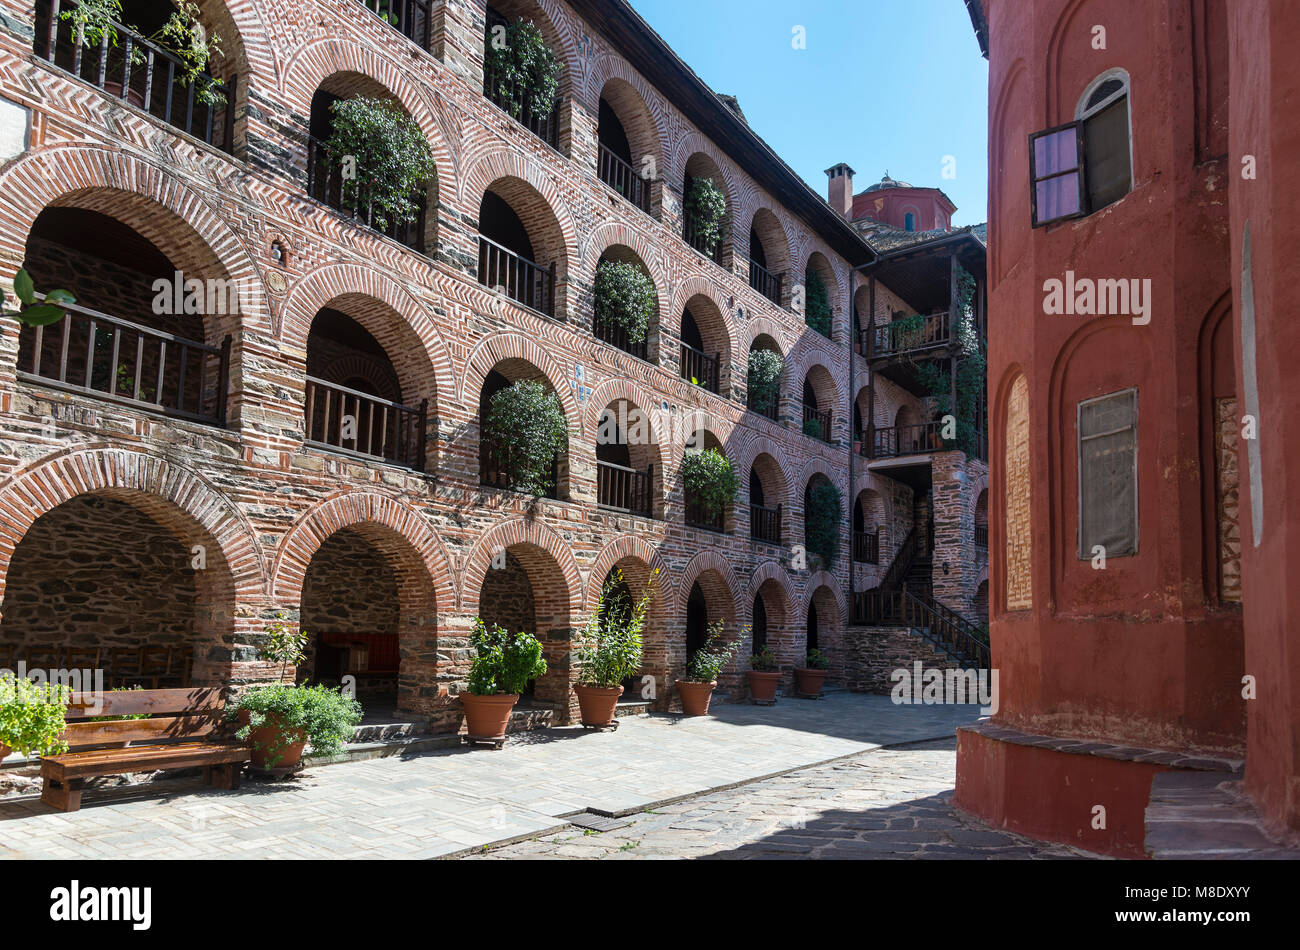 Monks cells in the inner courtyard of Koutloumousiou monastery  on The Athos peninsula, Macedonia, Northern Greece - Stock Image